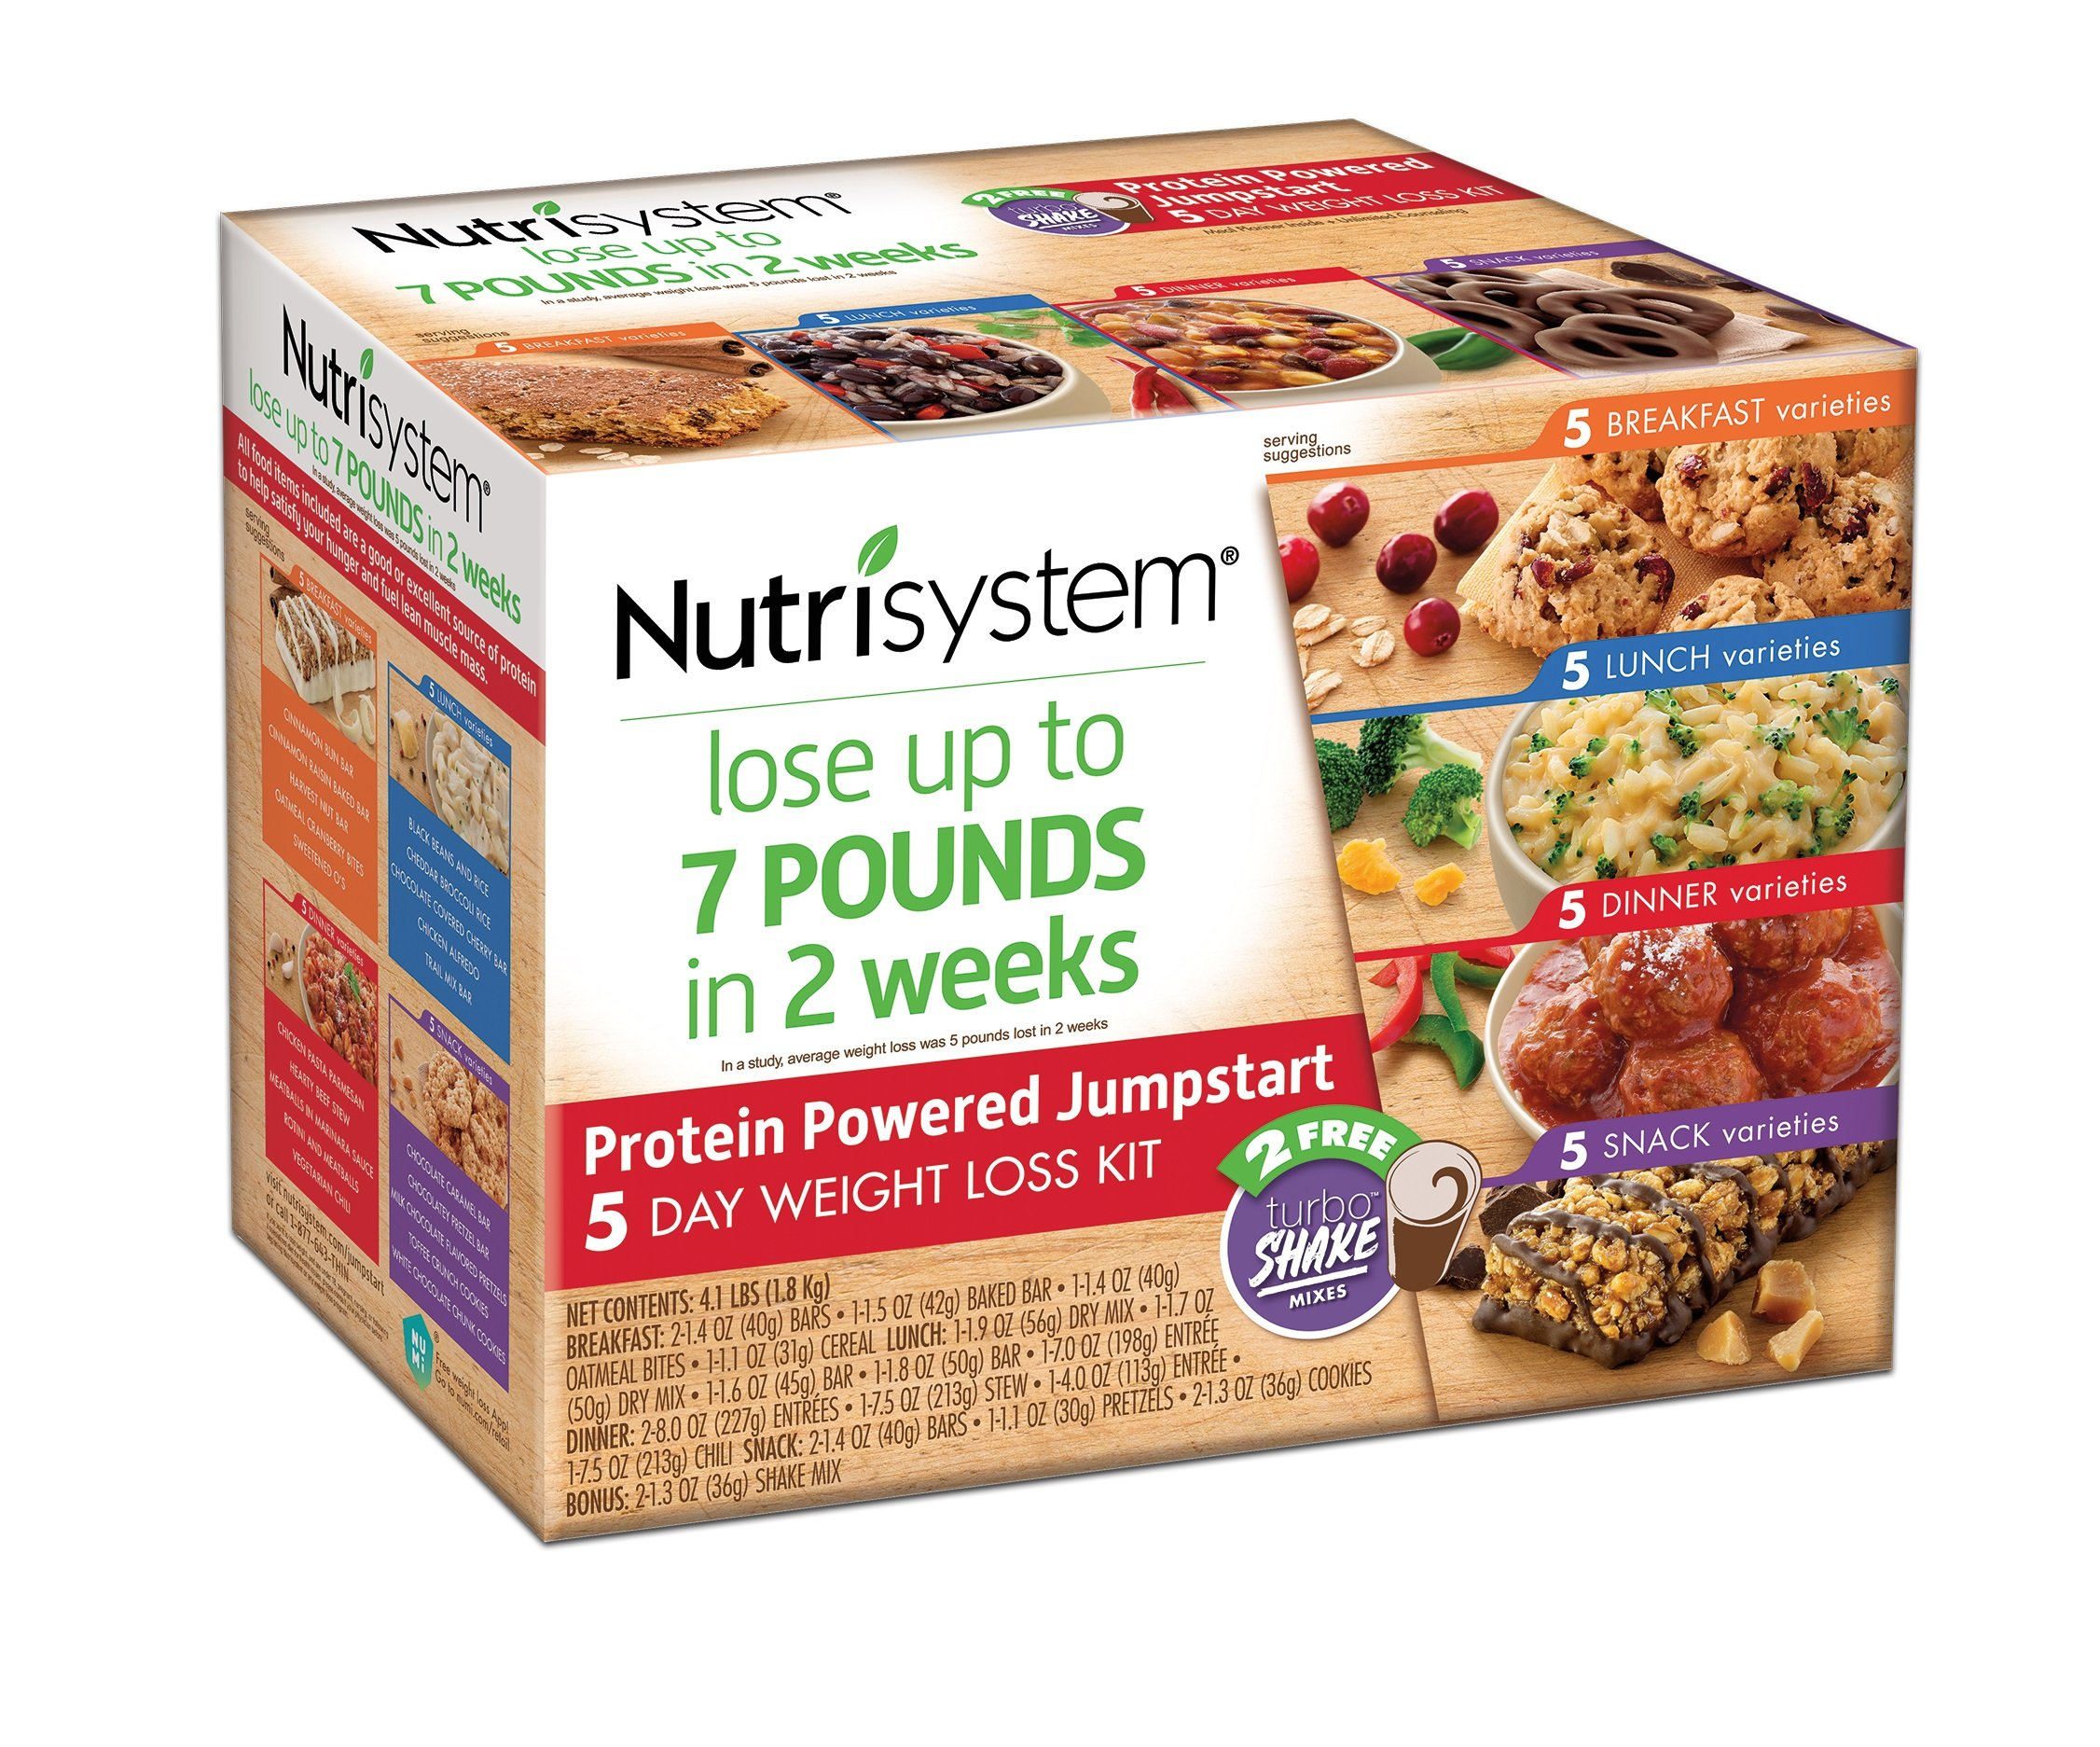 Nutrisystem 5 Day Weight Loss Kit, Protein Powered Jumpstart by Nutrisystem